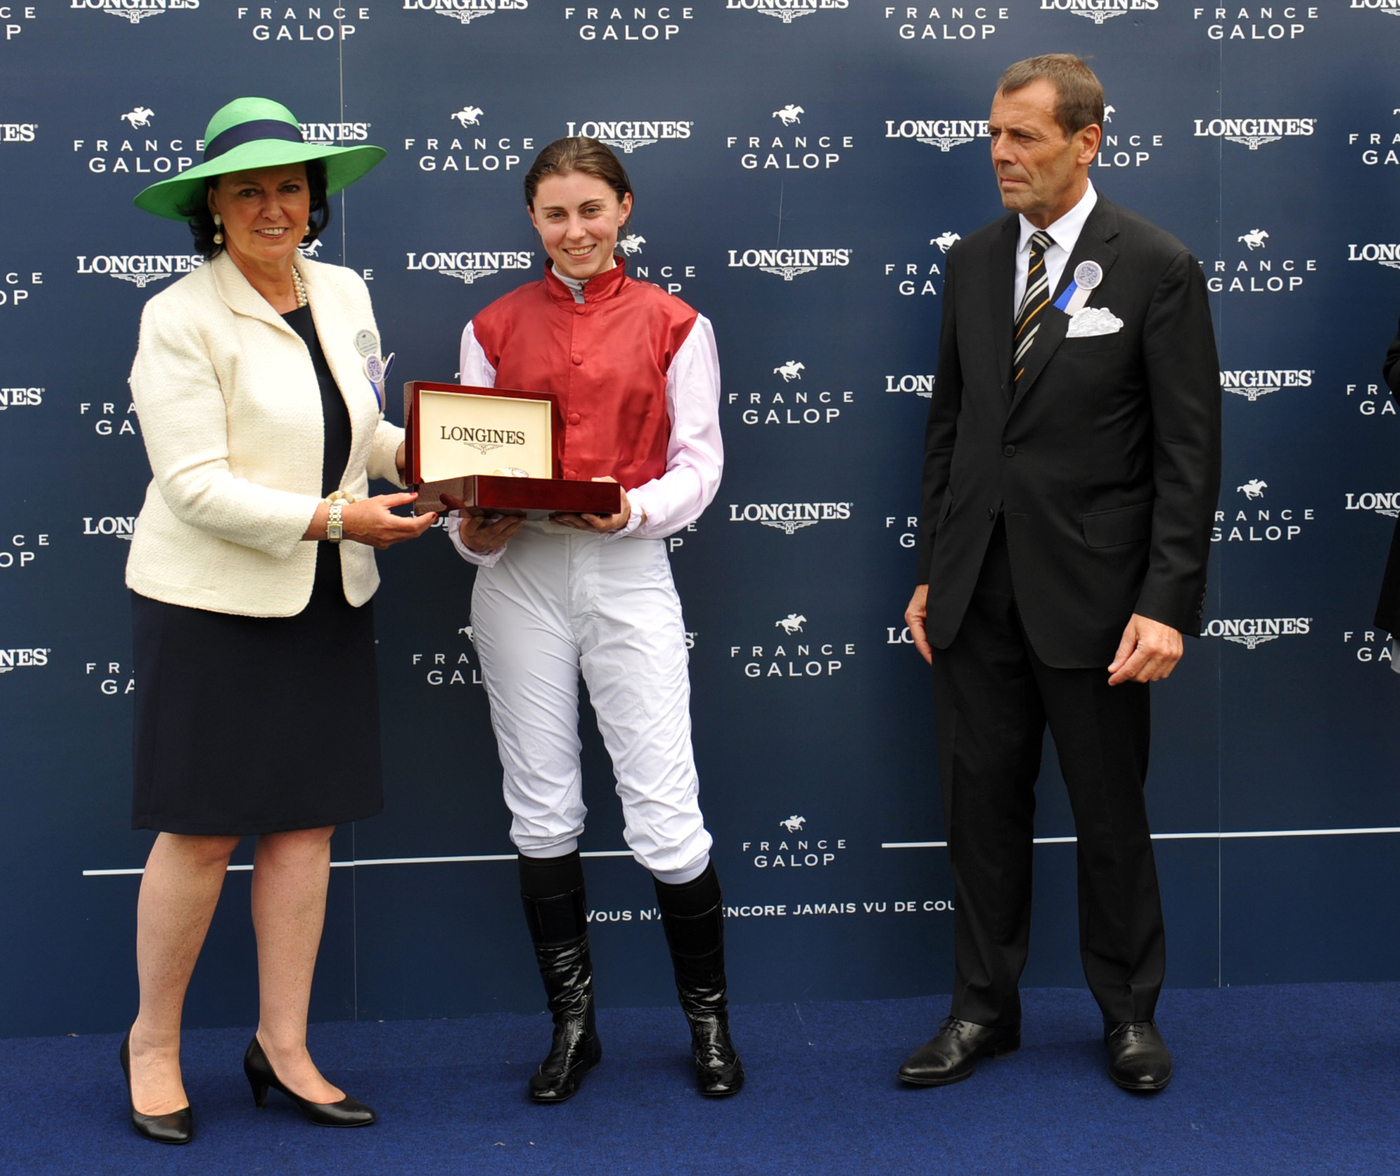 Longines Flat Racing Event: Prix de Diane Longines:  a weekend tinged with elegance 7